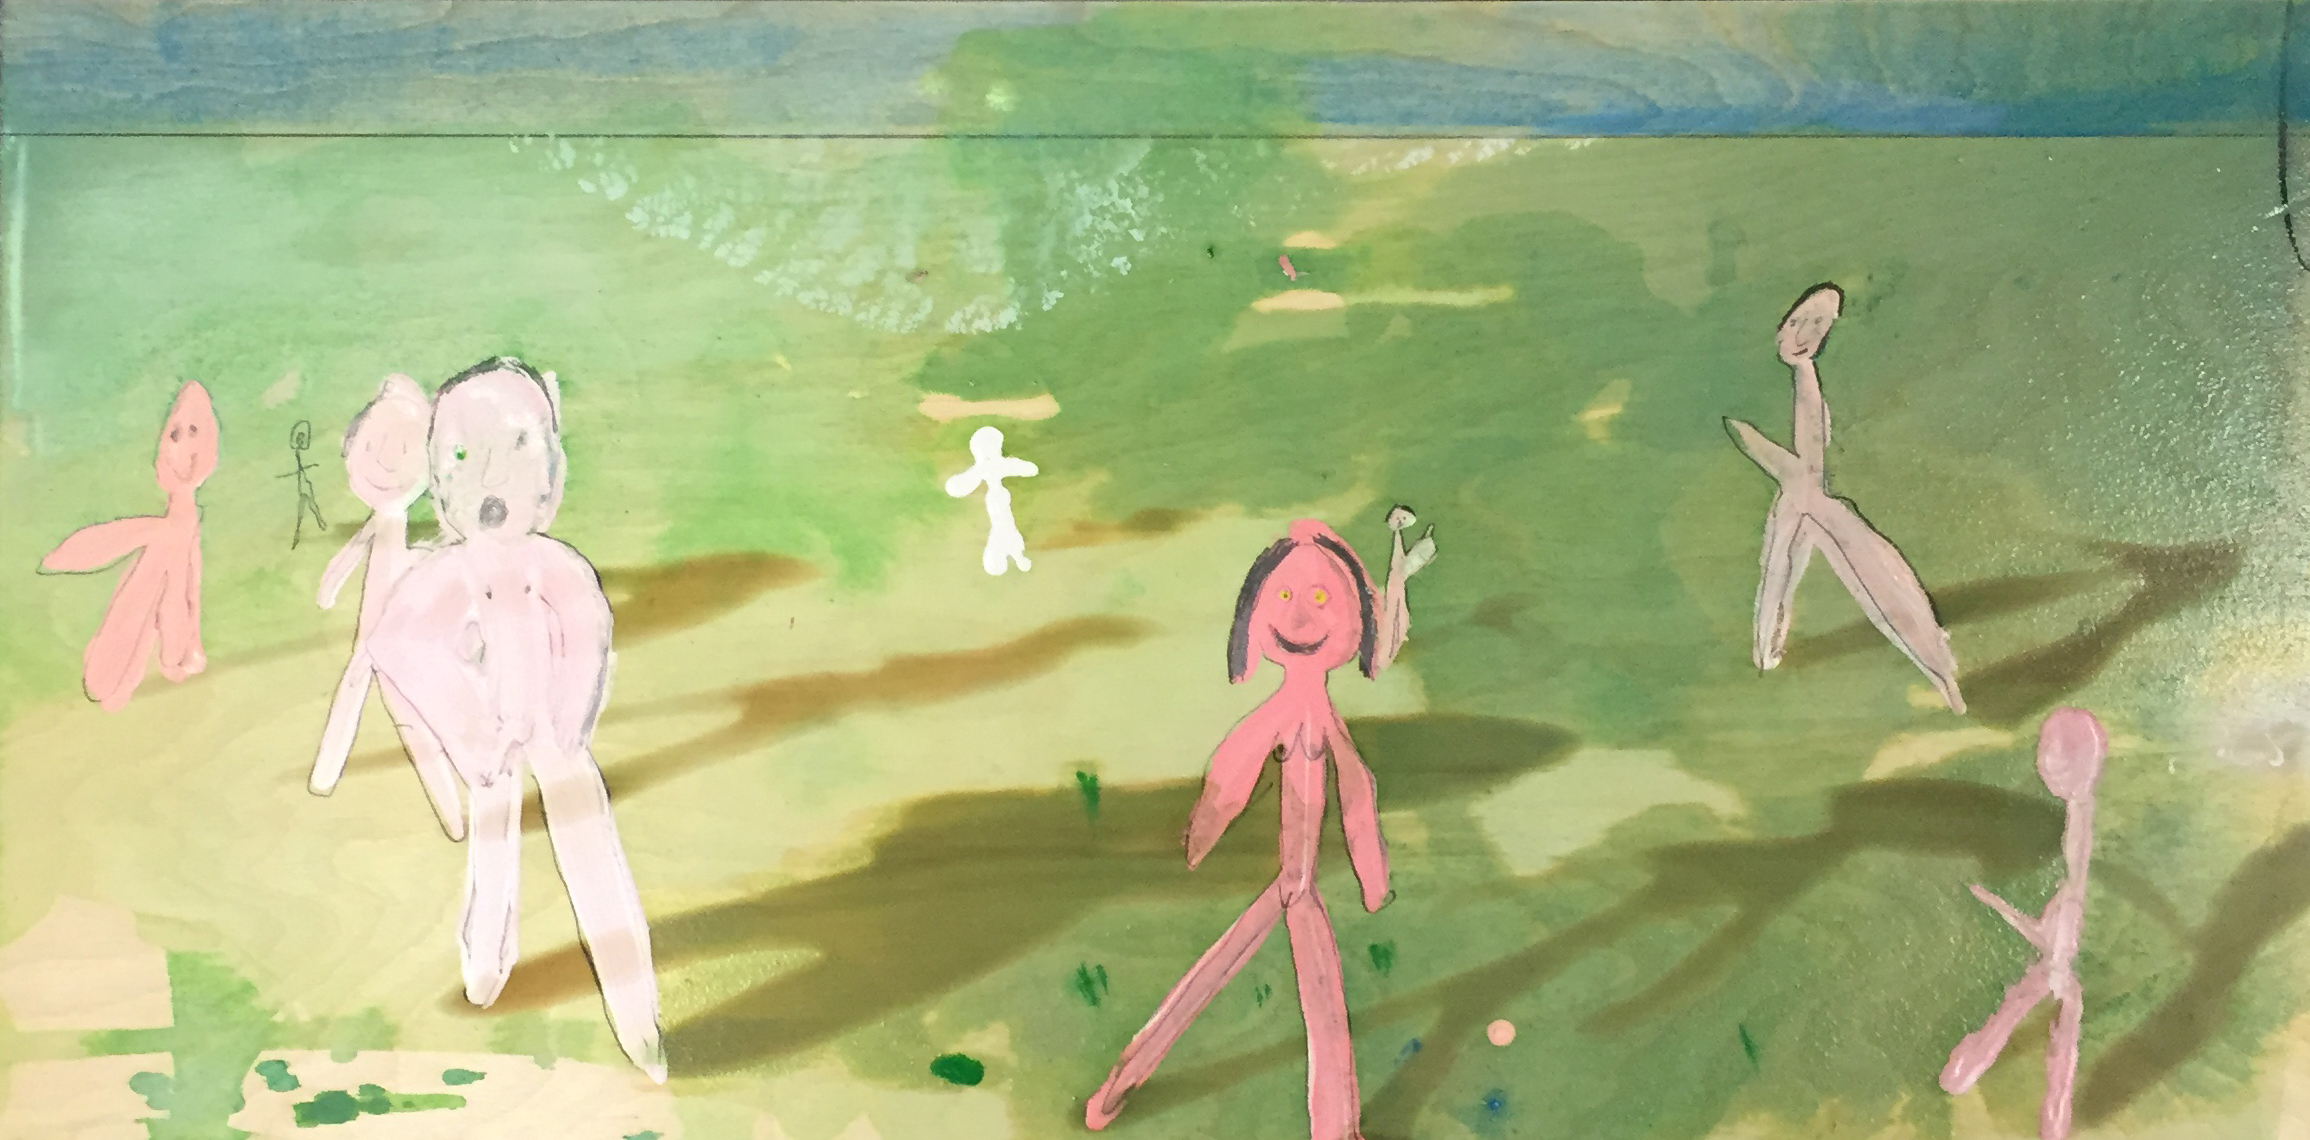 4.Nudes in Field, 2017, acrylic, house paint, pencil and laser etched shadows on plywood, 30 x 15 in.JPG